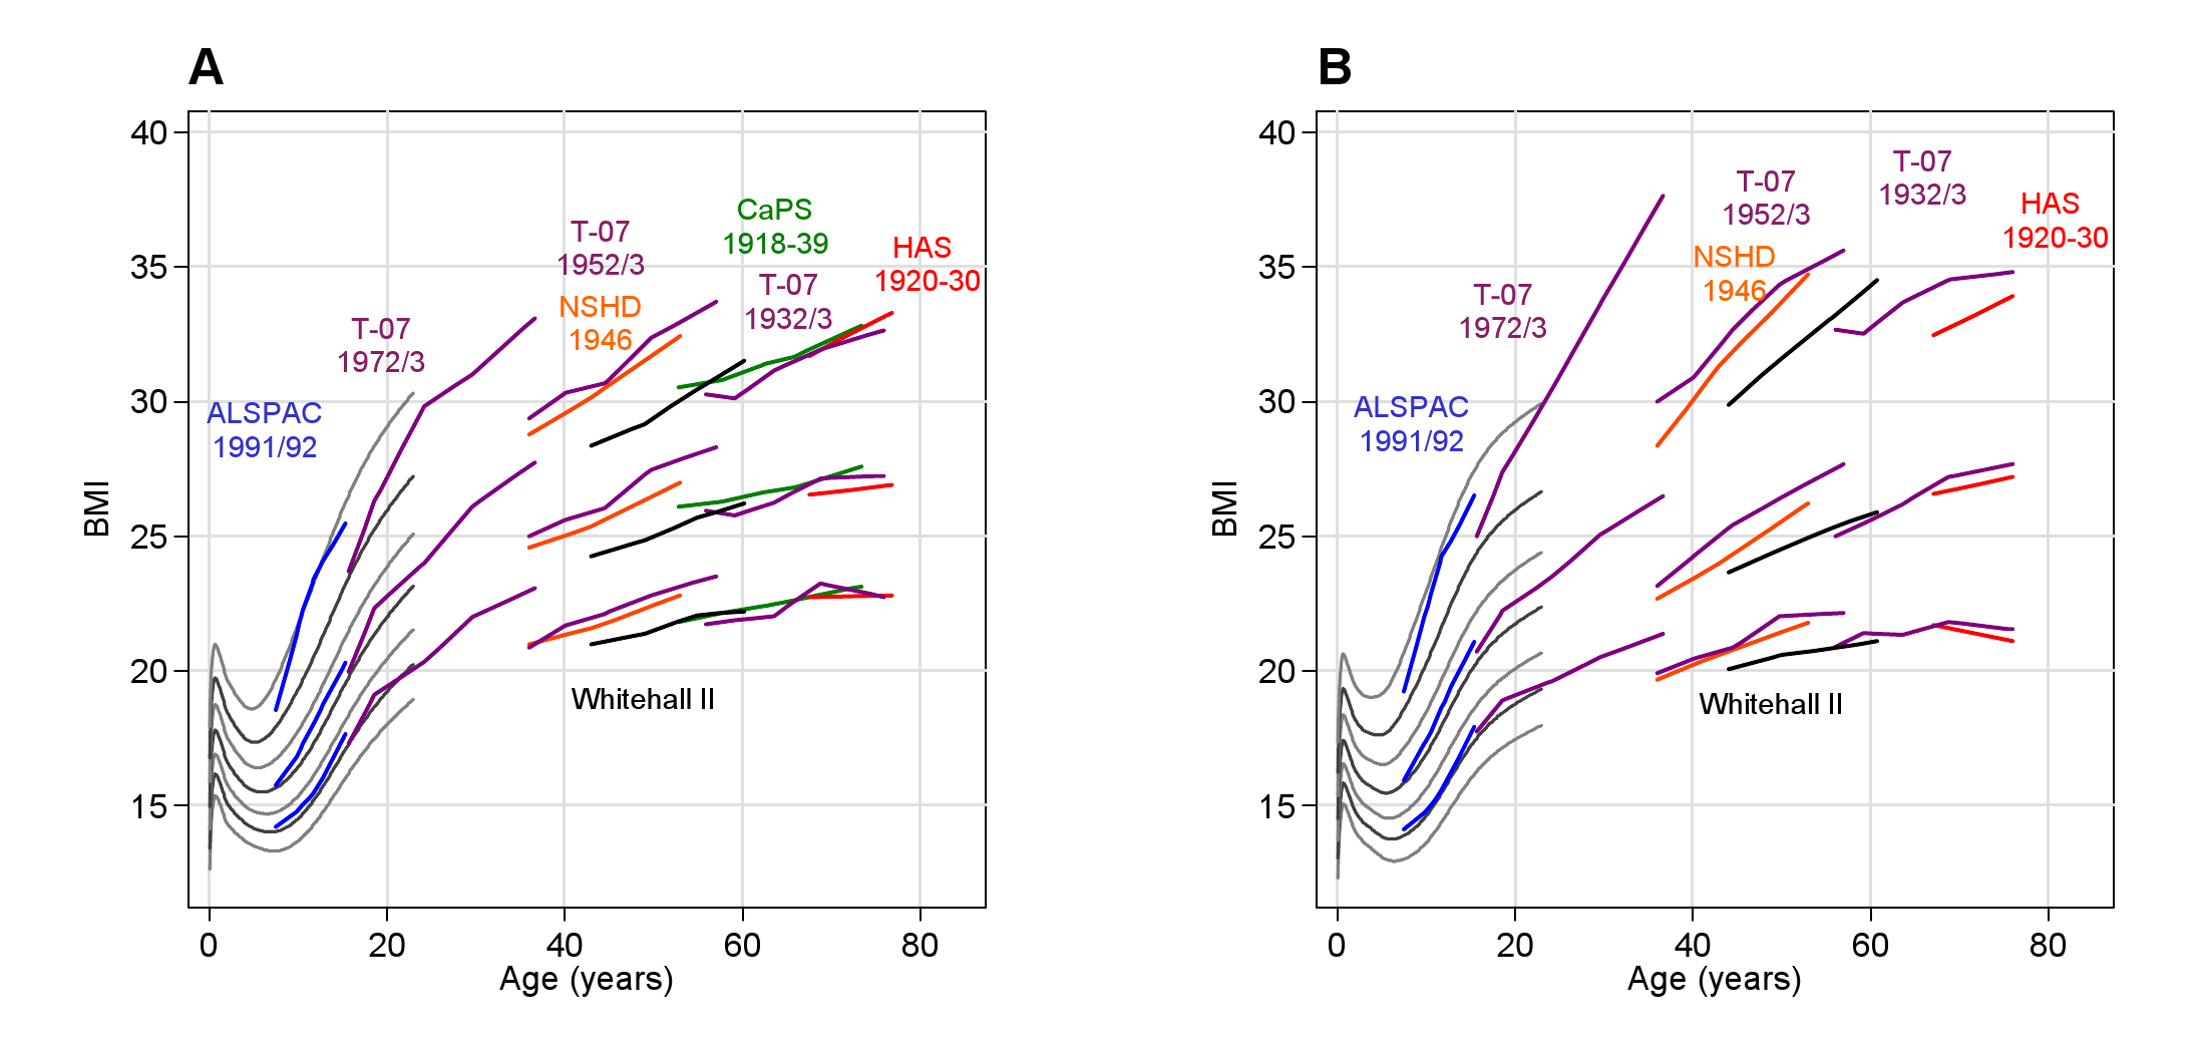 Observed BMI (kg/m<sup>2</sup>) in each cohort.